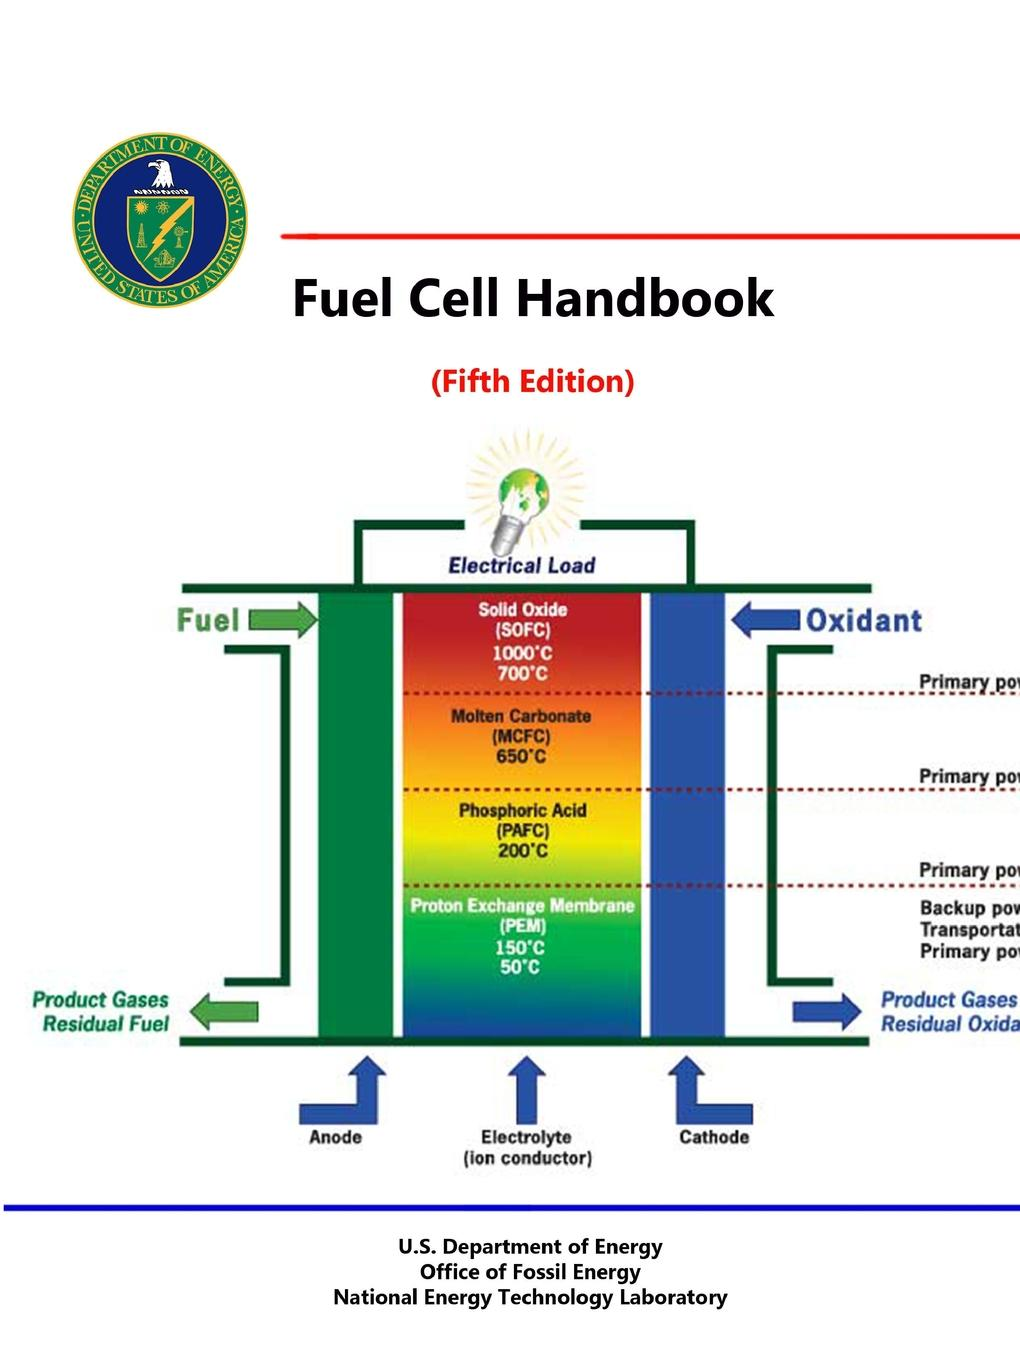 U.S. Department of Energy Fuel Cell Handbook (Fifth Edition) pem cell electrolyzer fuel cell to generate power pem cell for experimental education